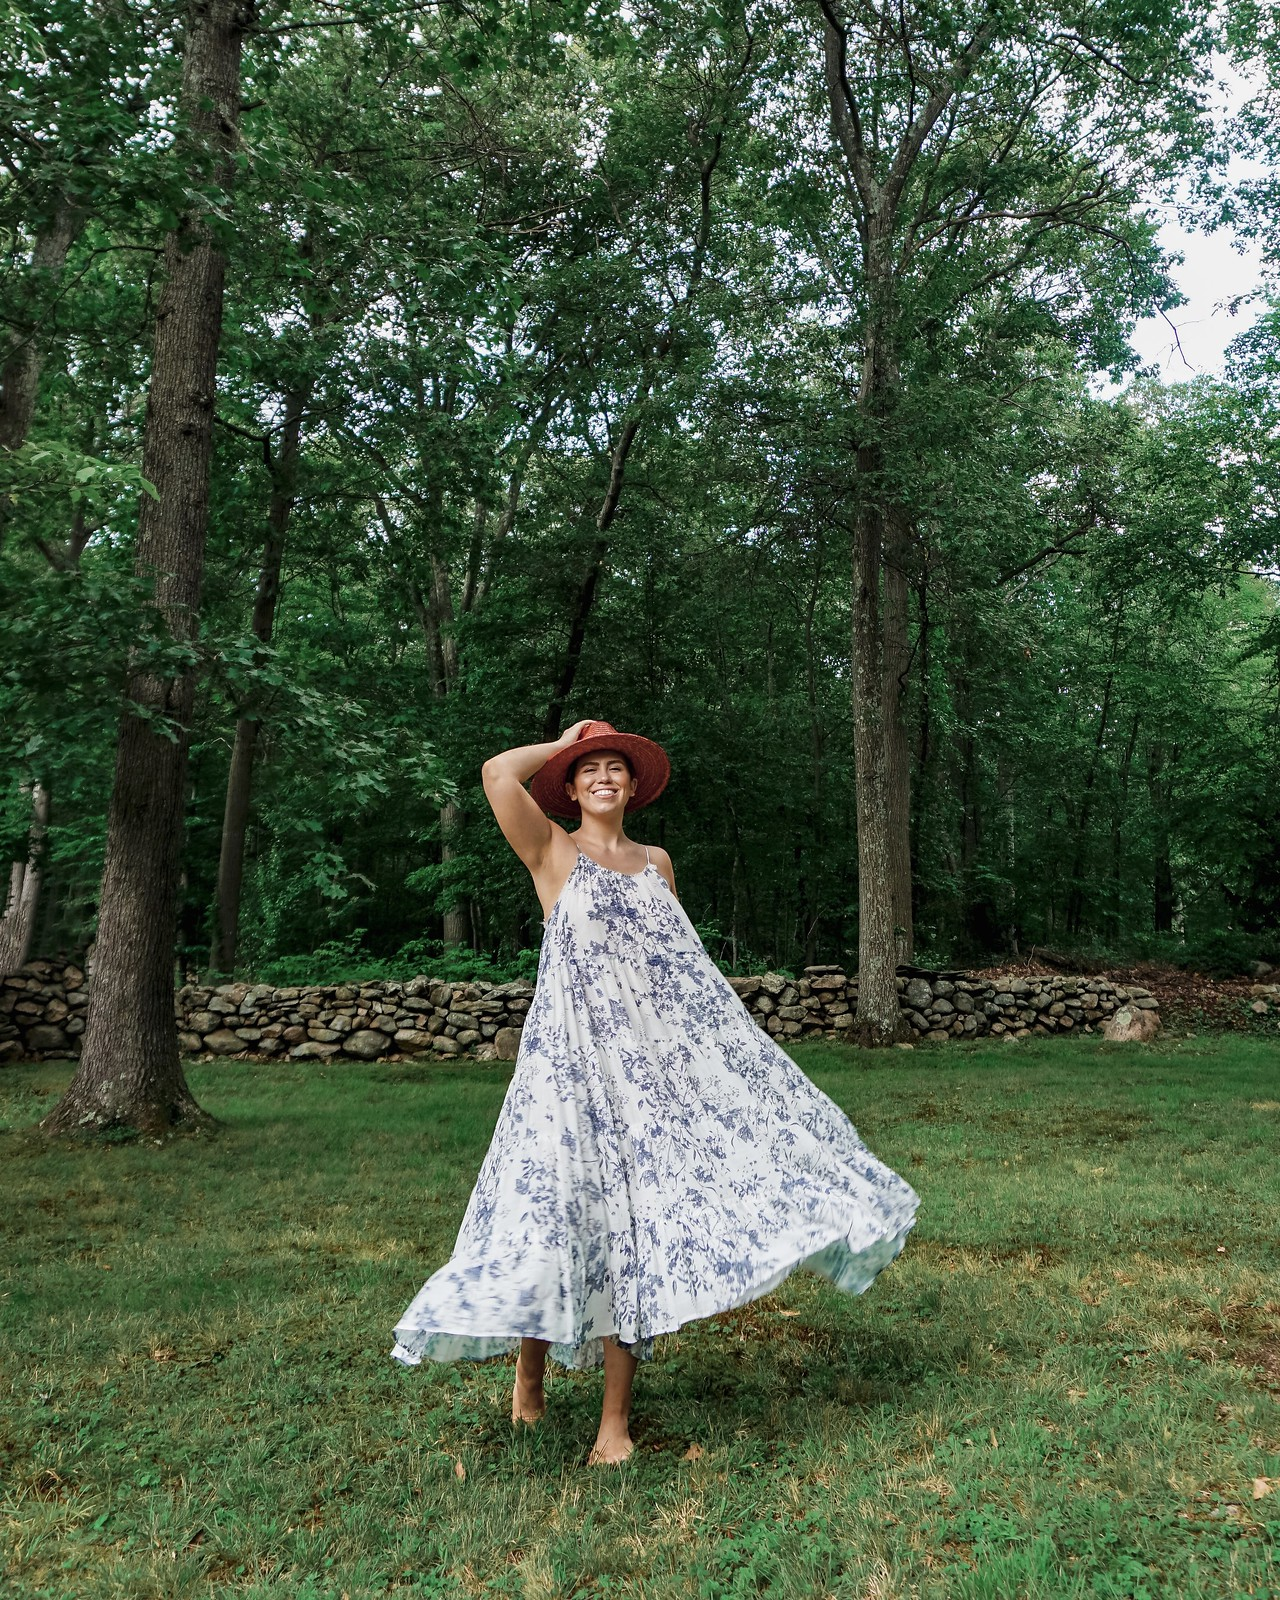 White Blue Floral Maxi Dress | Easy Summer Boho Feminine Fashion | A Look Back at 10 Years of Blogging Living After Midnite Blogger Jackie Giardina